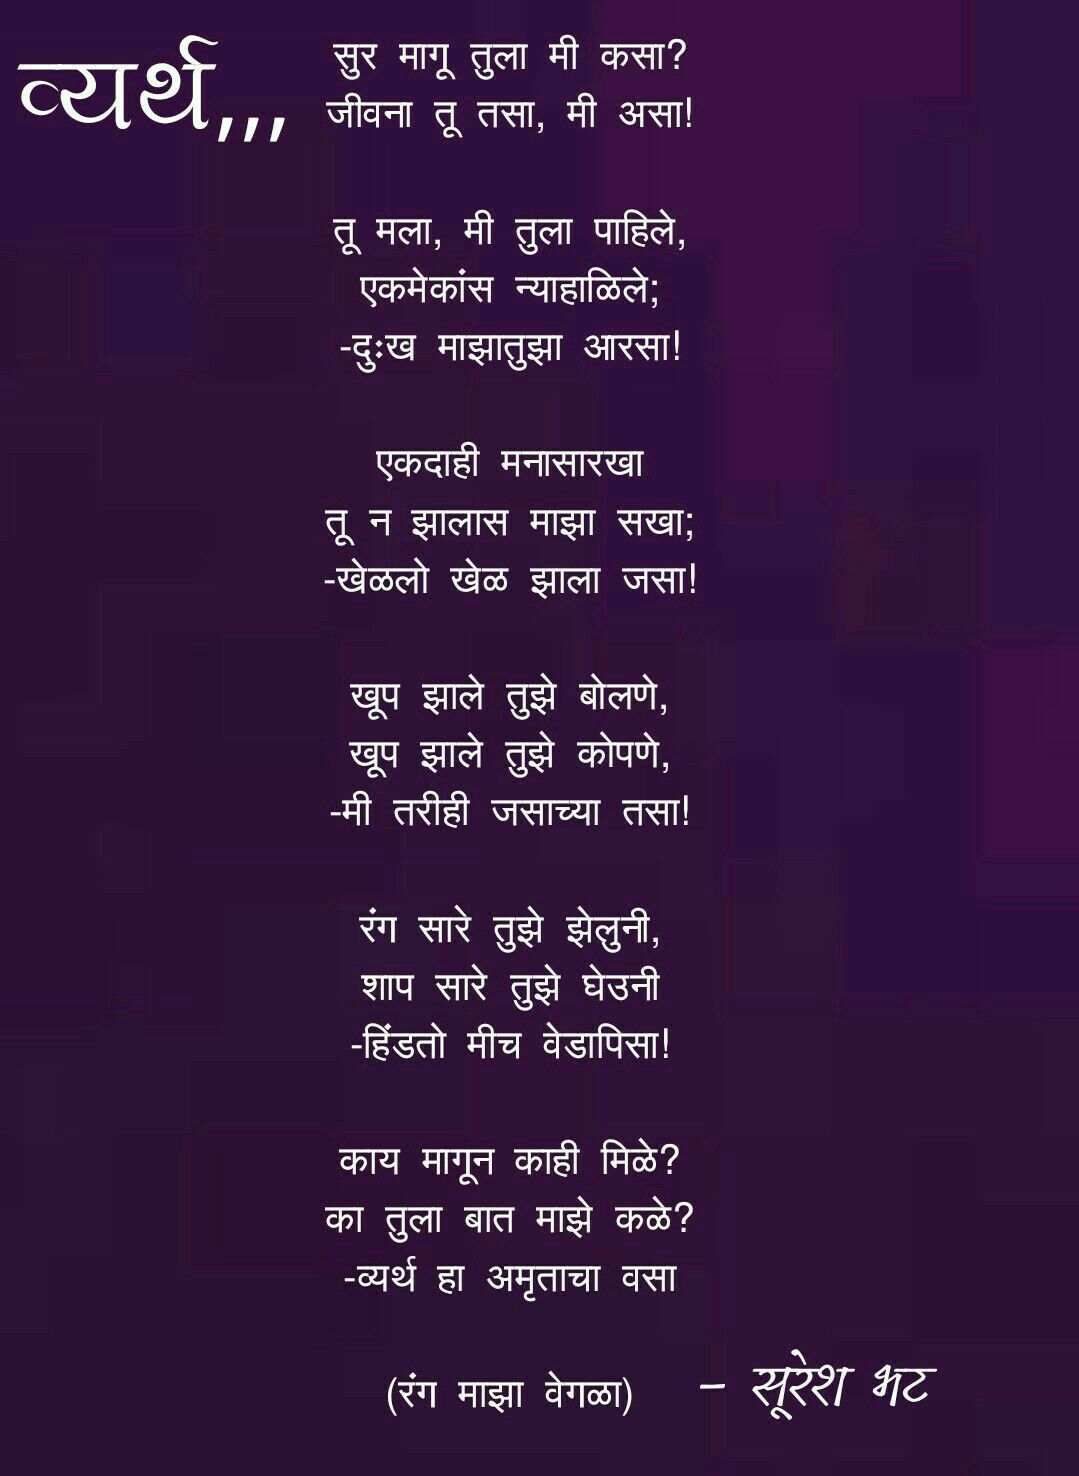 Pin by Bhushan on सुरेश भट Poems (With images) Marathi